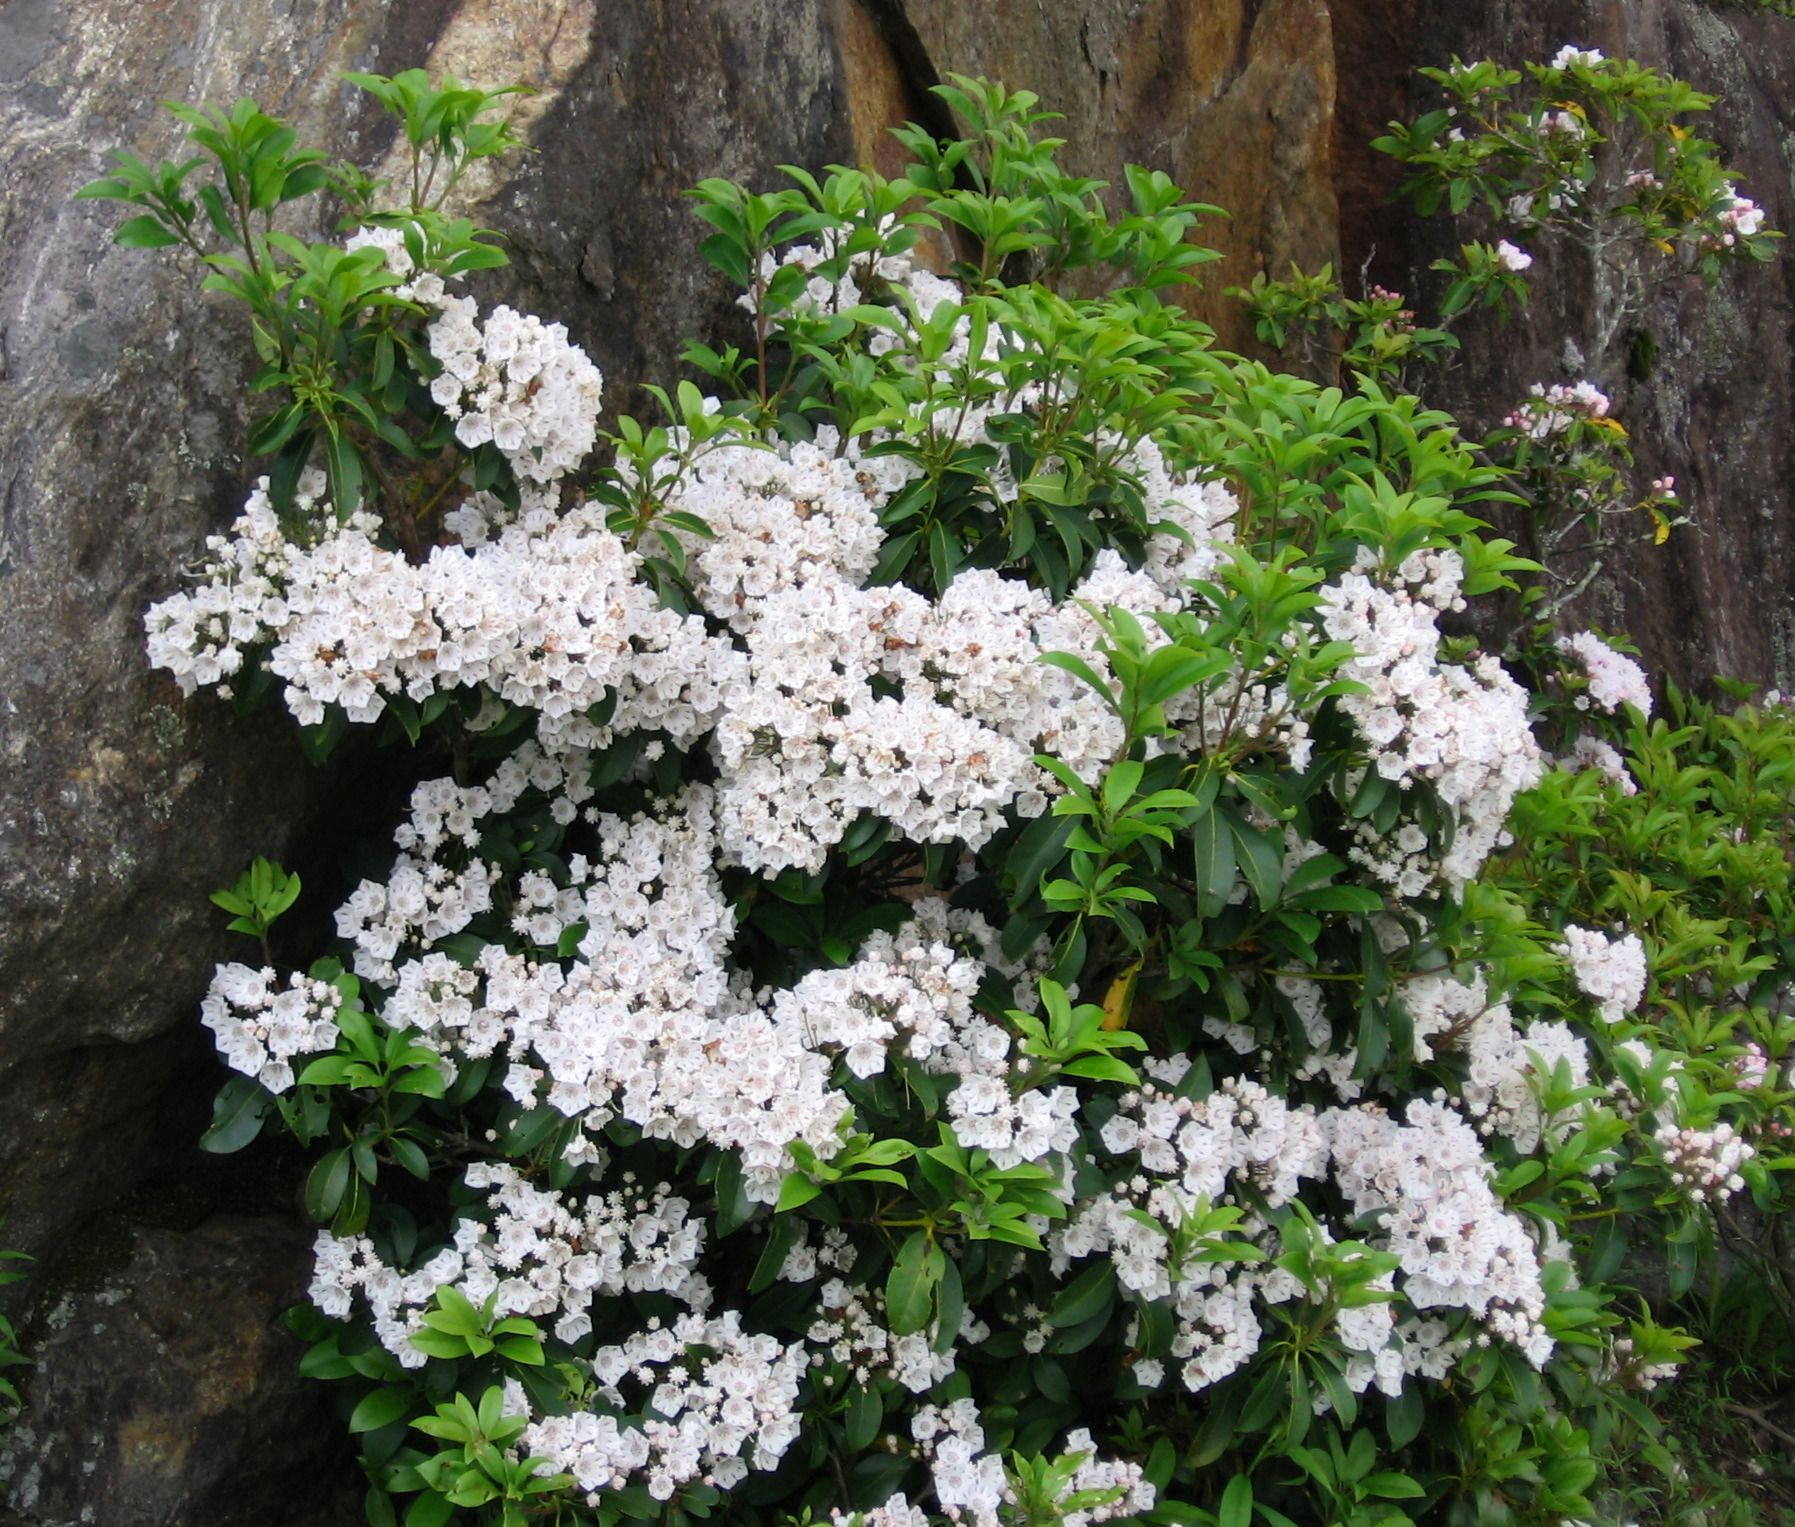 Dwarf mountain laurel shrub google search front yard kalmia latifolia privacy landscaping diy deck evergreen shrubs dry creek small trees garden projects garden ideas native plants dhlflorist Image collections